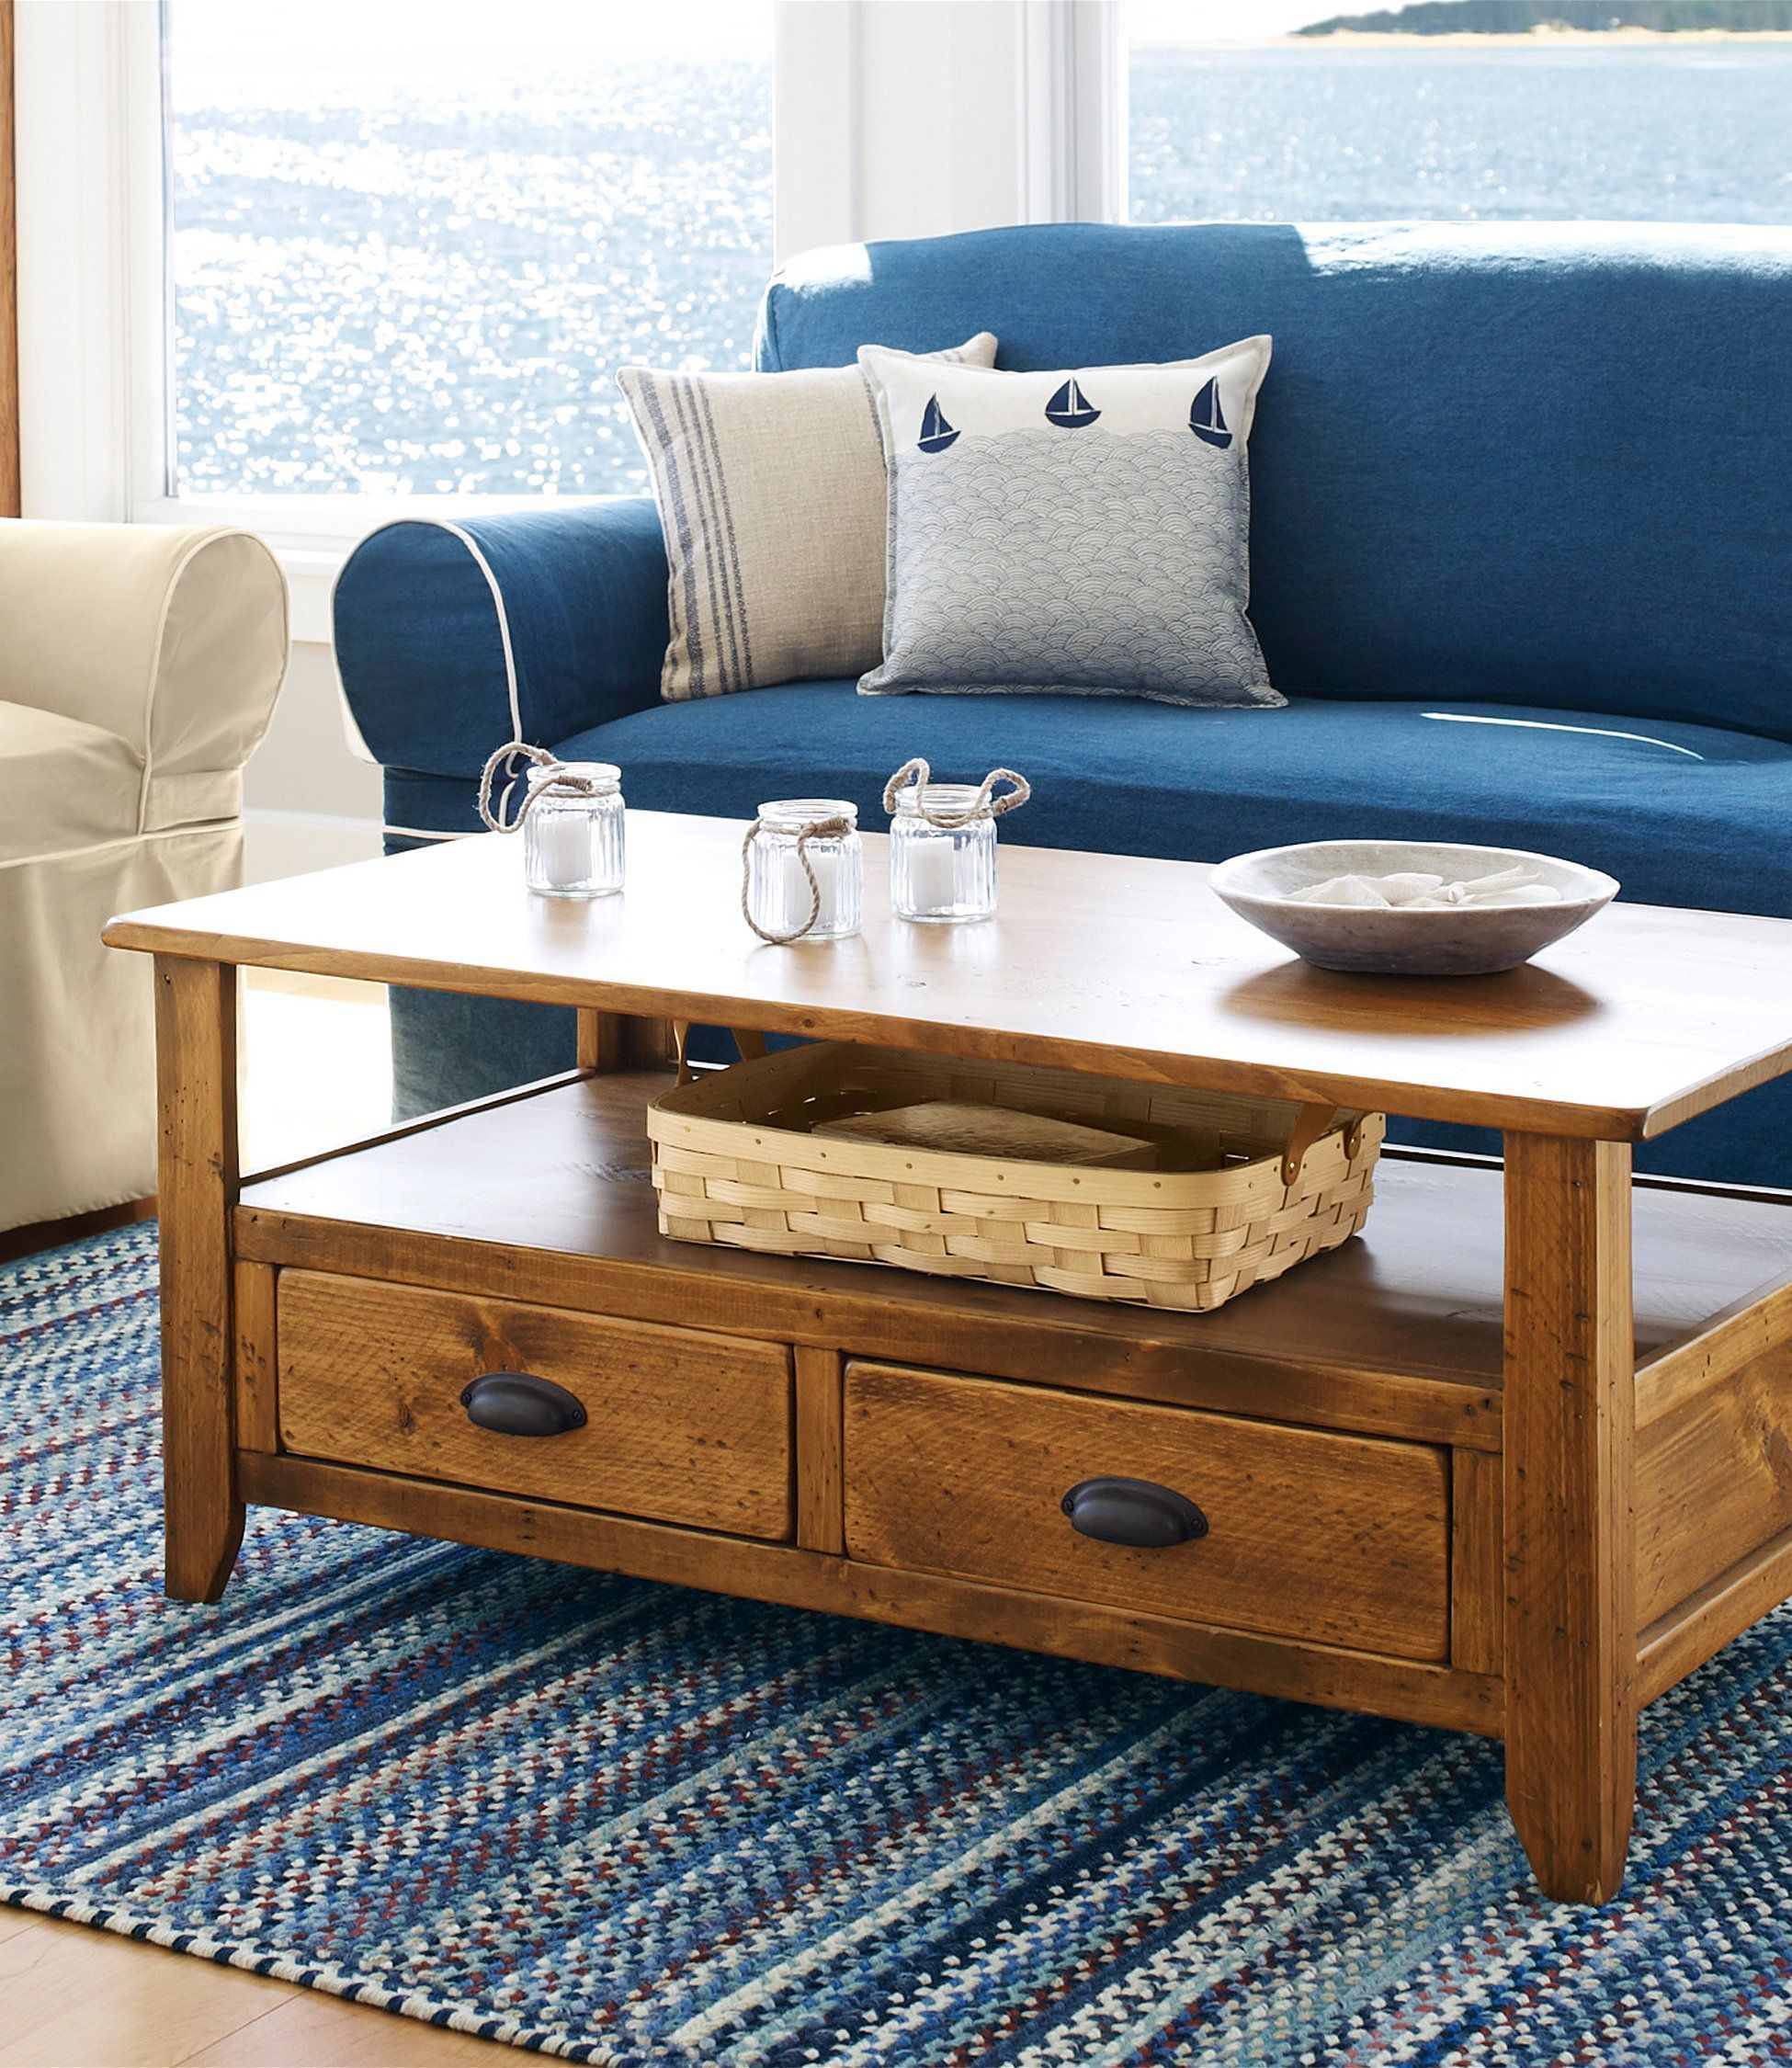 Rustic Wooden Coffee Table Table Decor Living Room Rustic Wooden Coffee Table Coffee Table